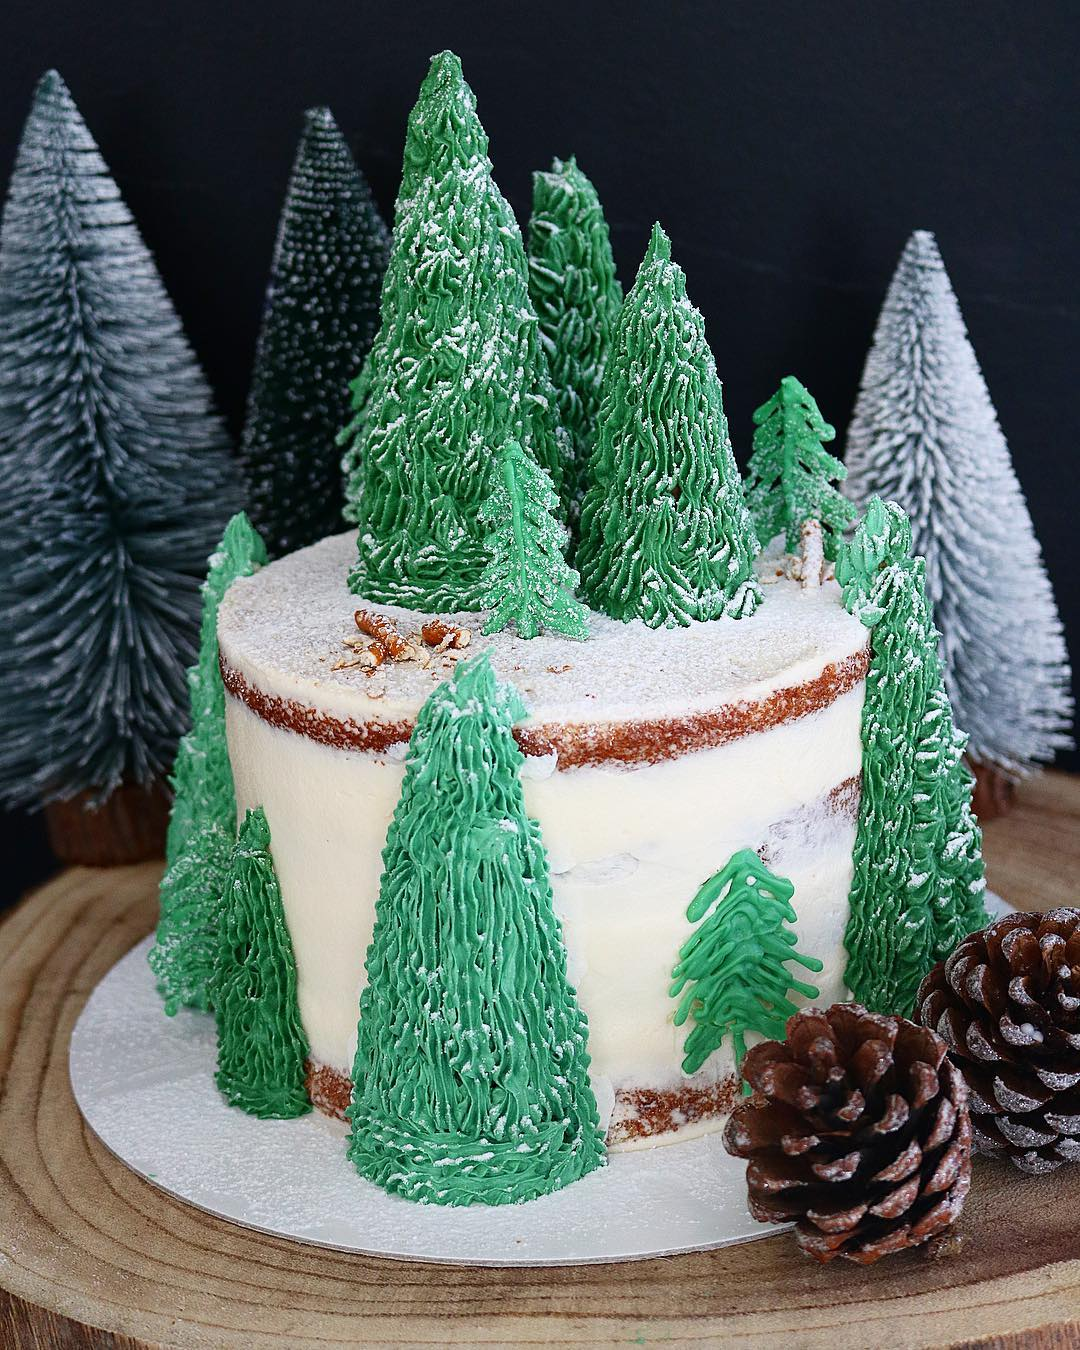 Tarta bosque nevado